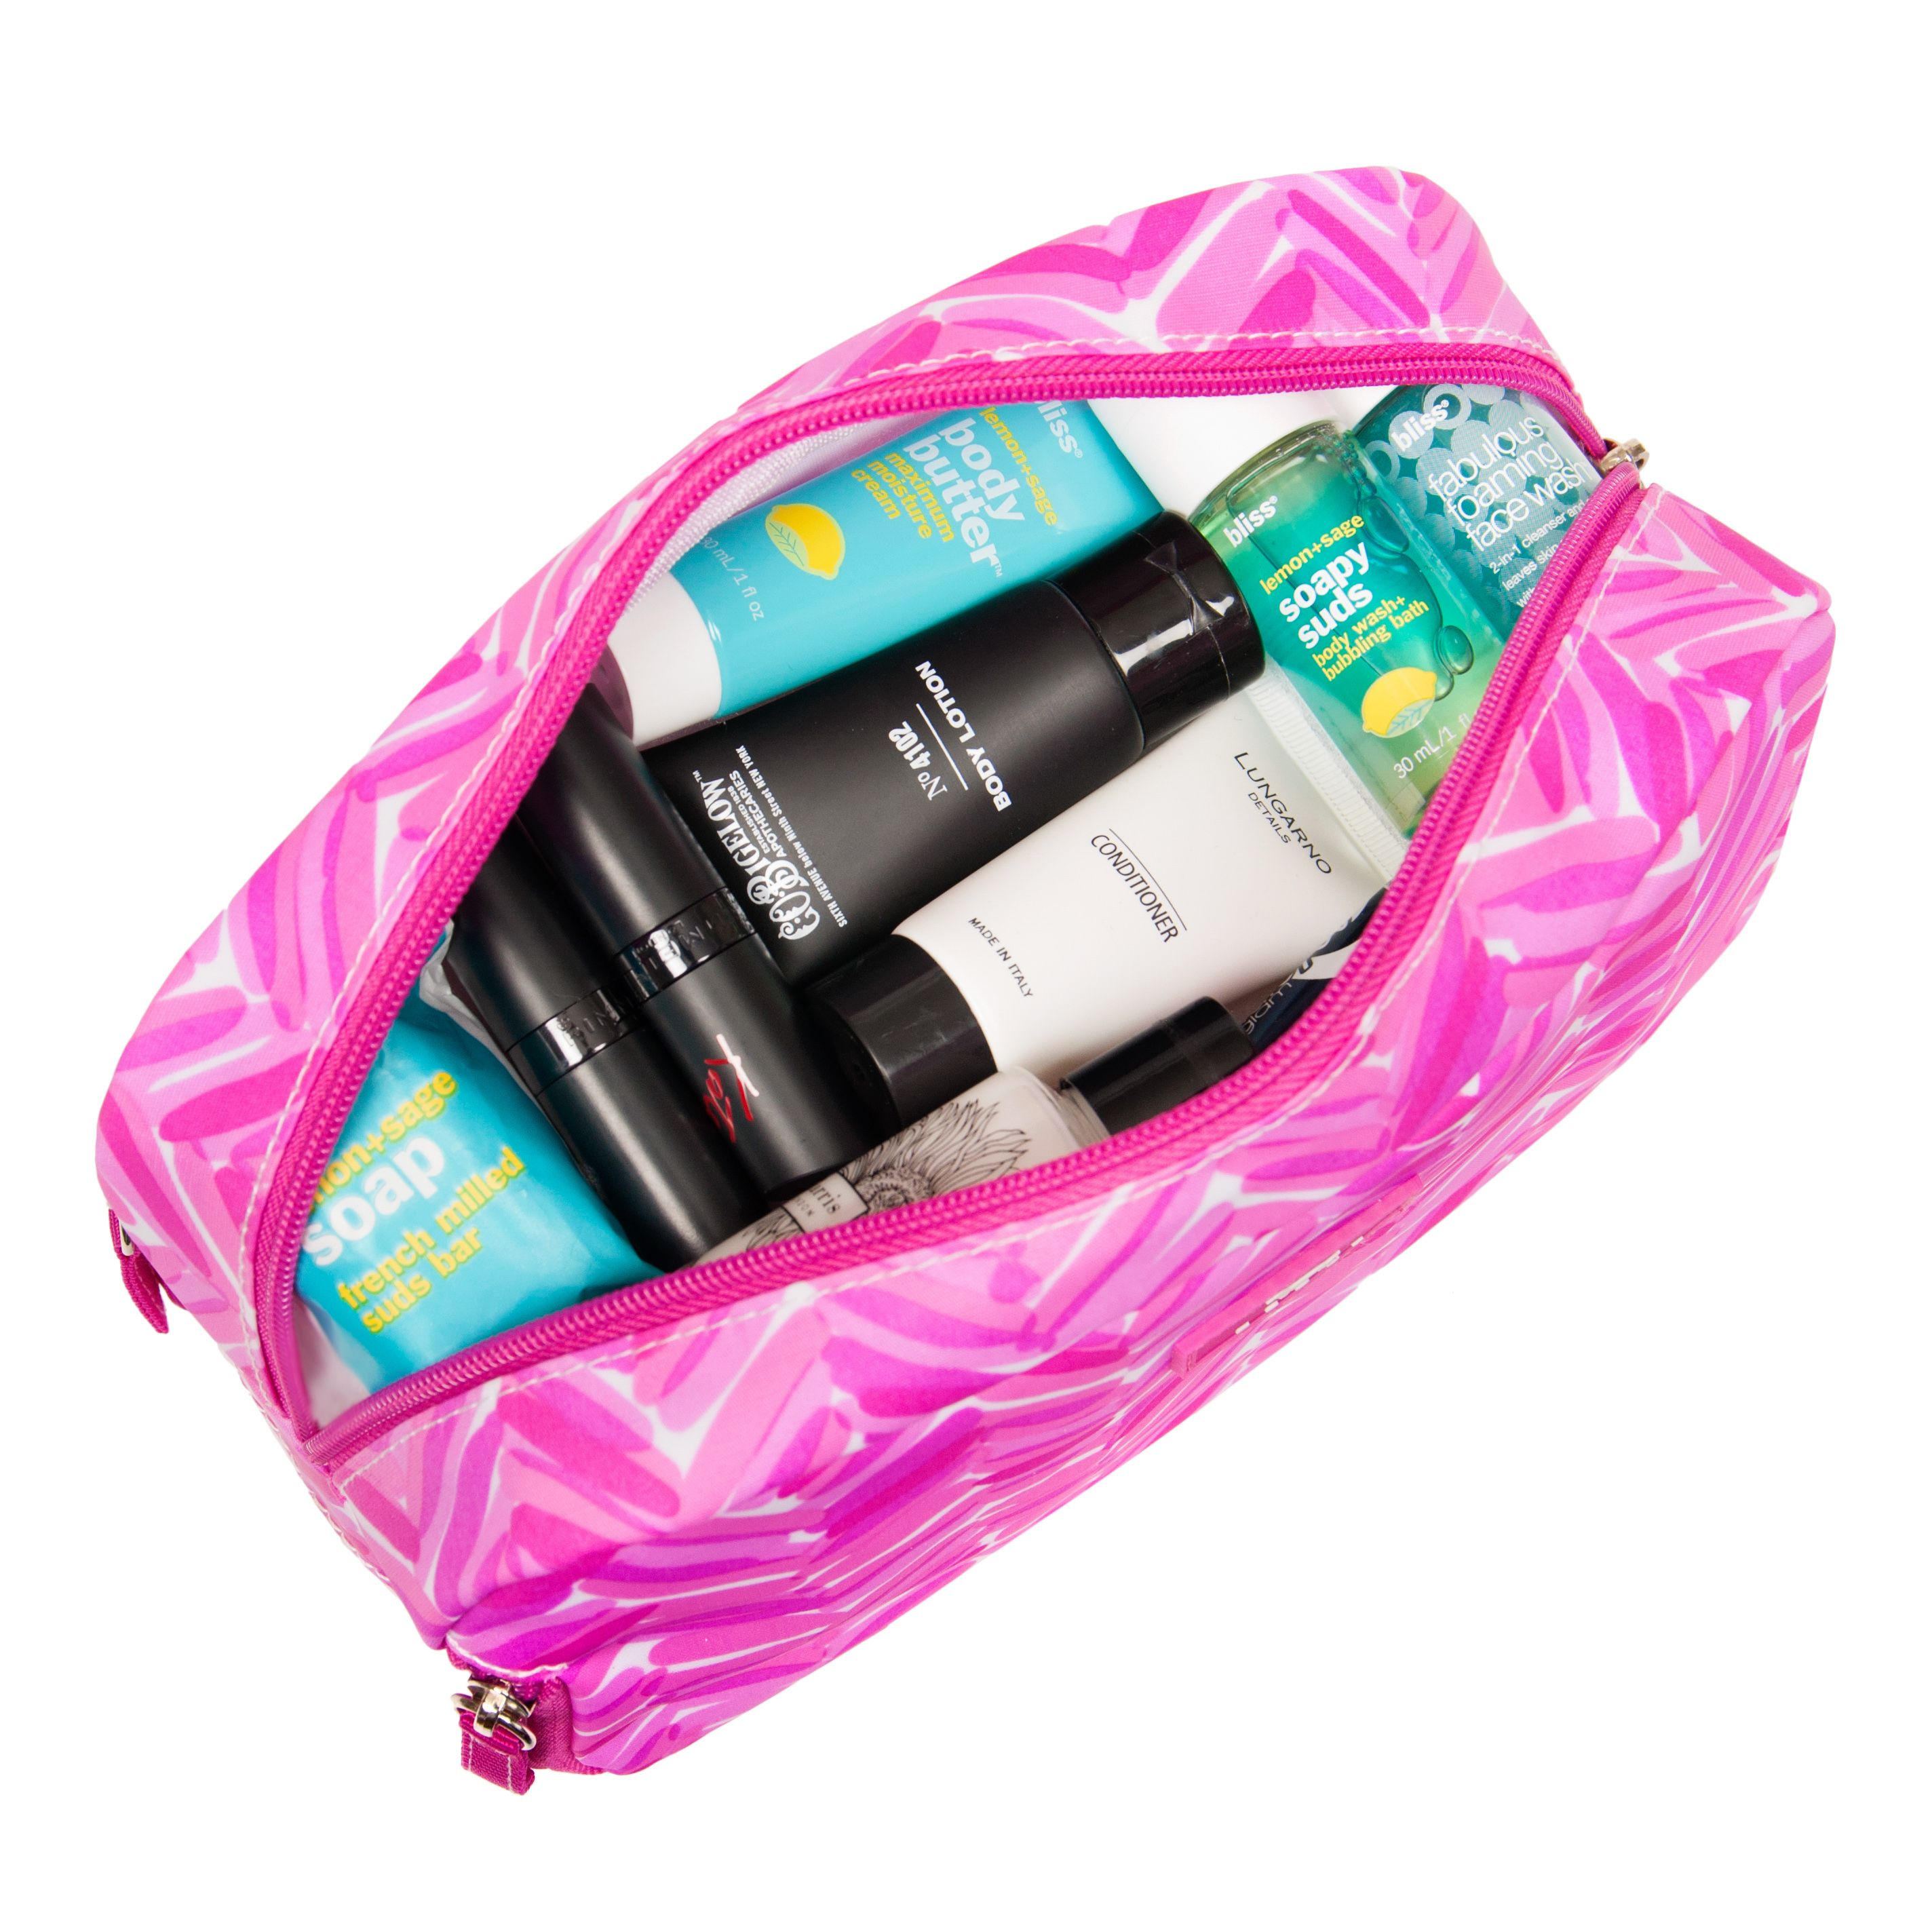 The SCOUT 3Way Cosmetic Bag is the ménage a toiletries